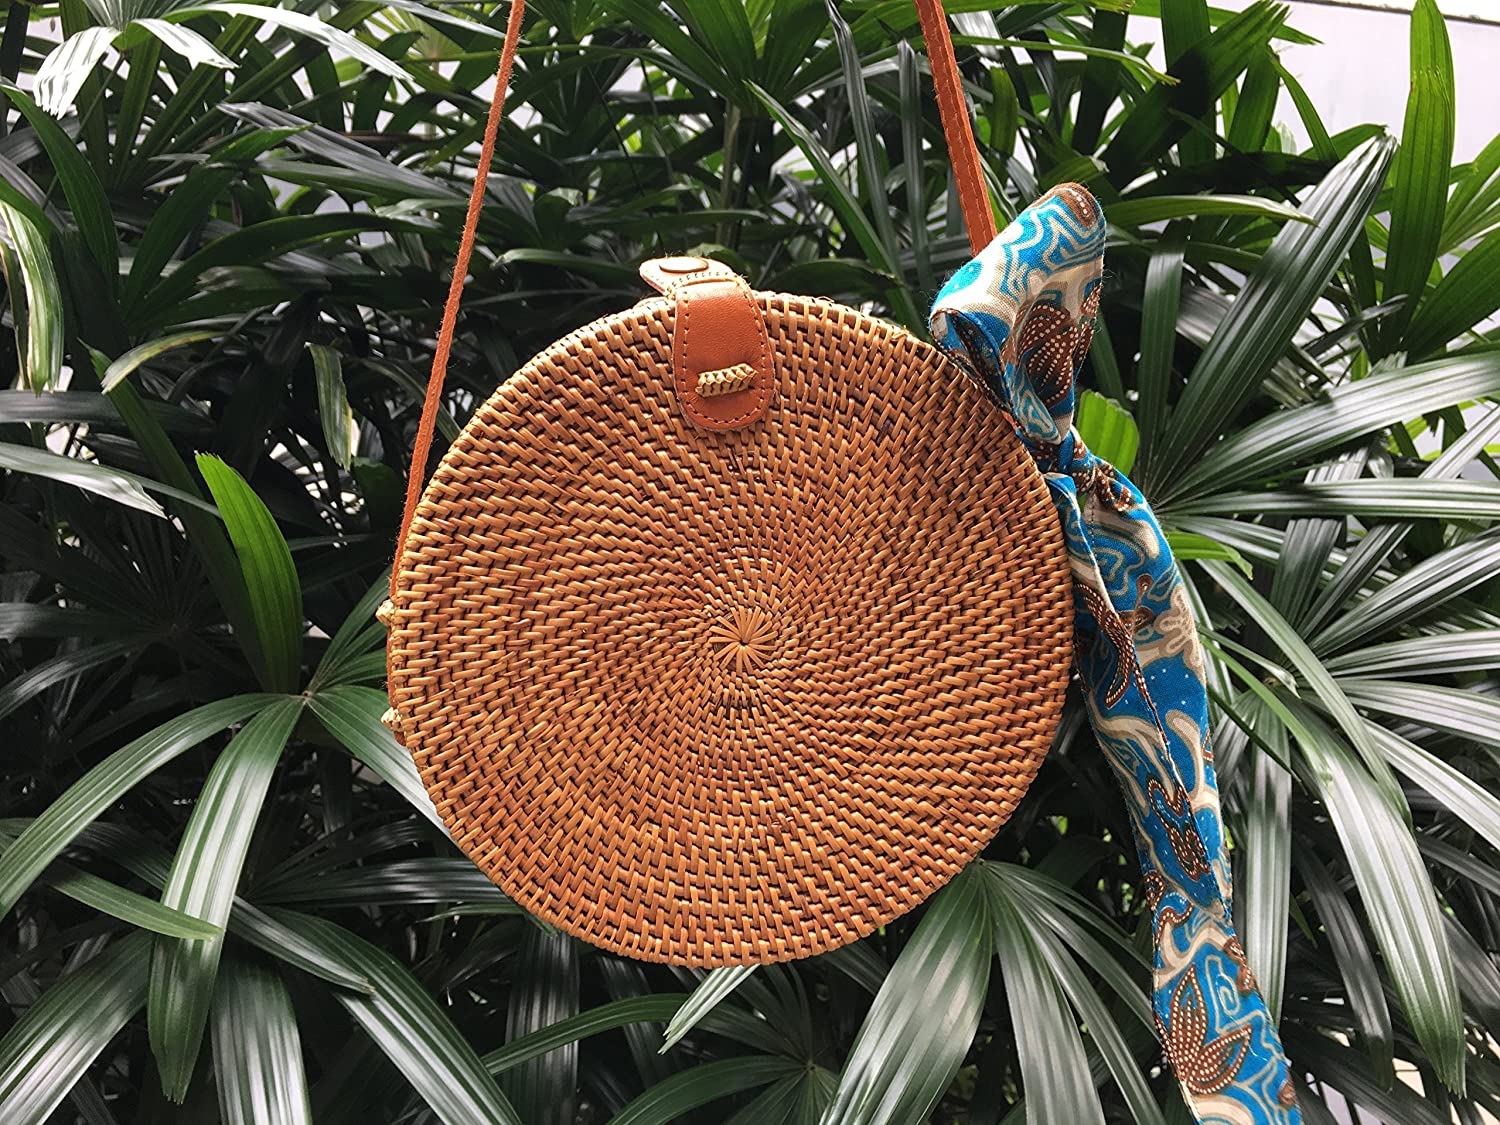 Round woven rattan basket bag with leather clip, Bohemian round shoulder bag, Round shoulder bag, Hand Woven Rattan Round Bag, Basket Bag, Round Bag, Rattan Bag, Straw Bag, Handmade Bag, Weave Bag